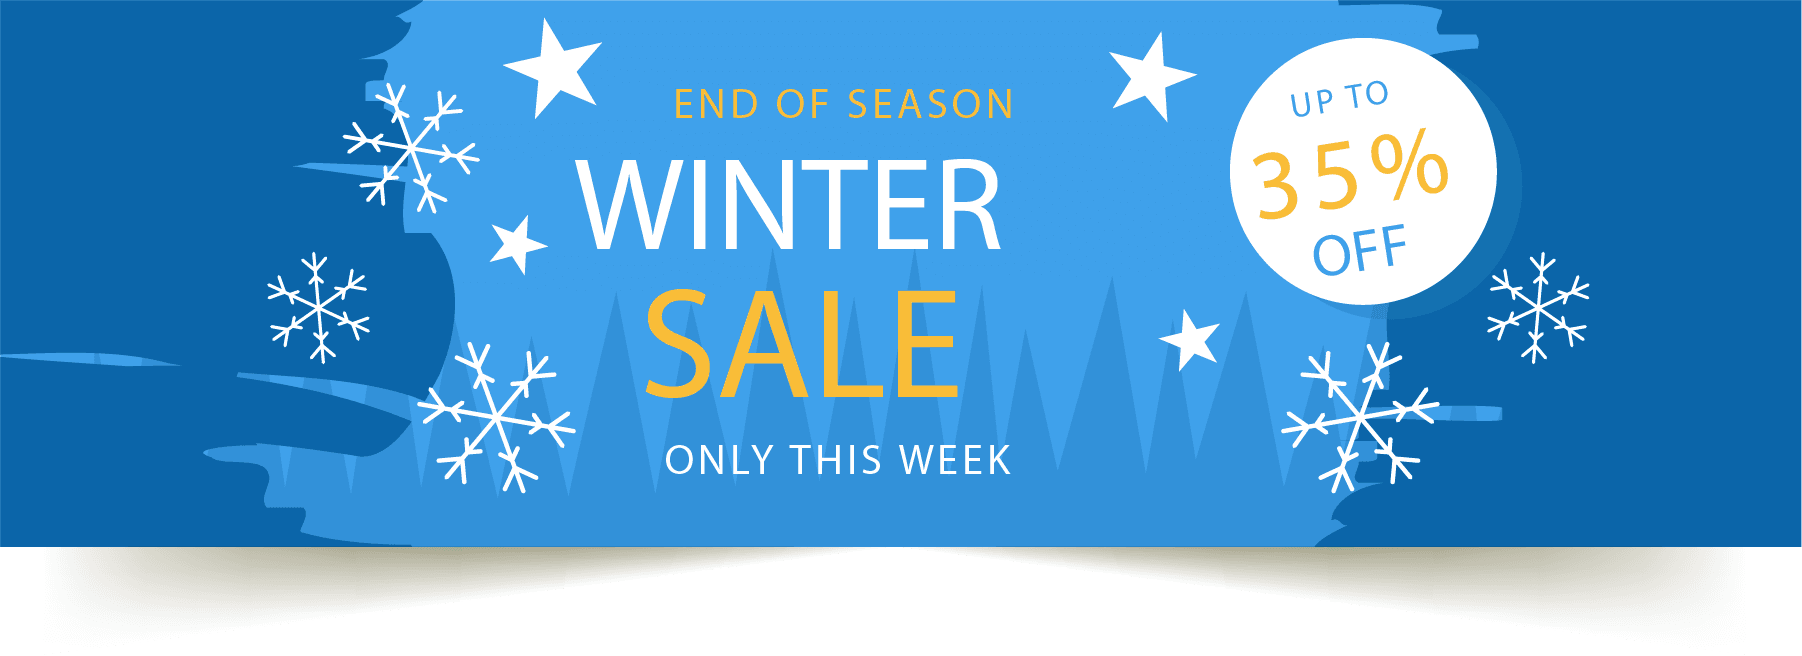 winter sale 35% off